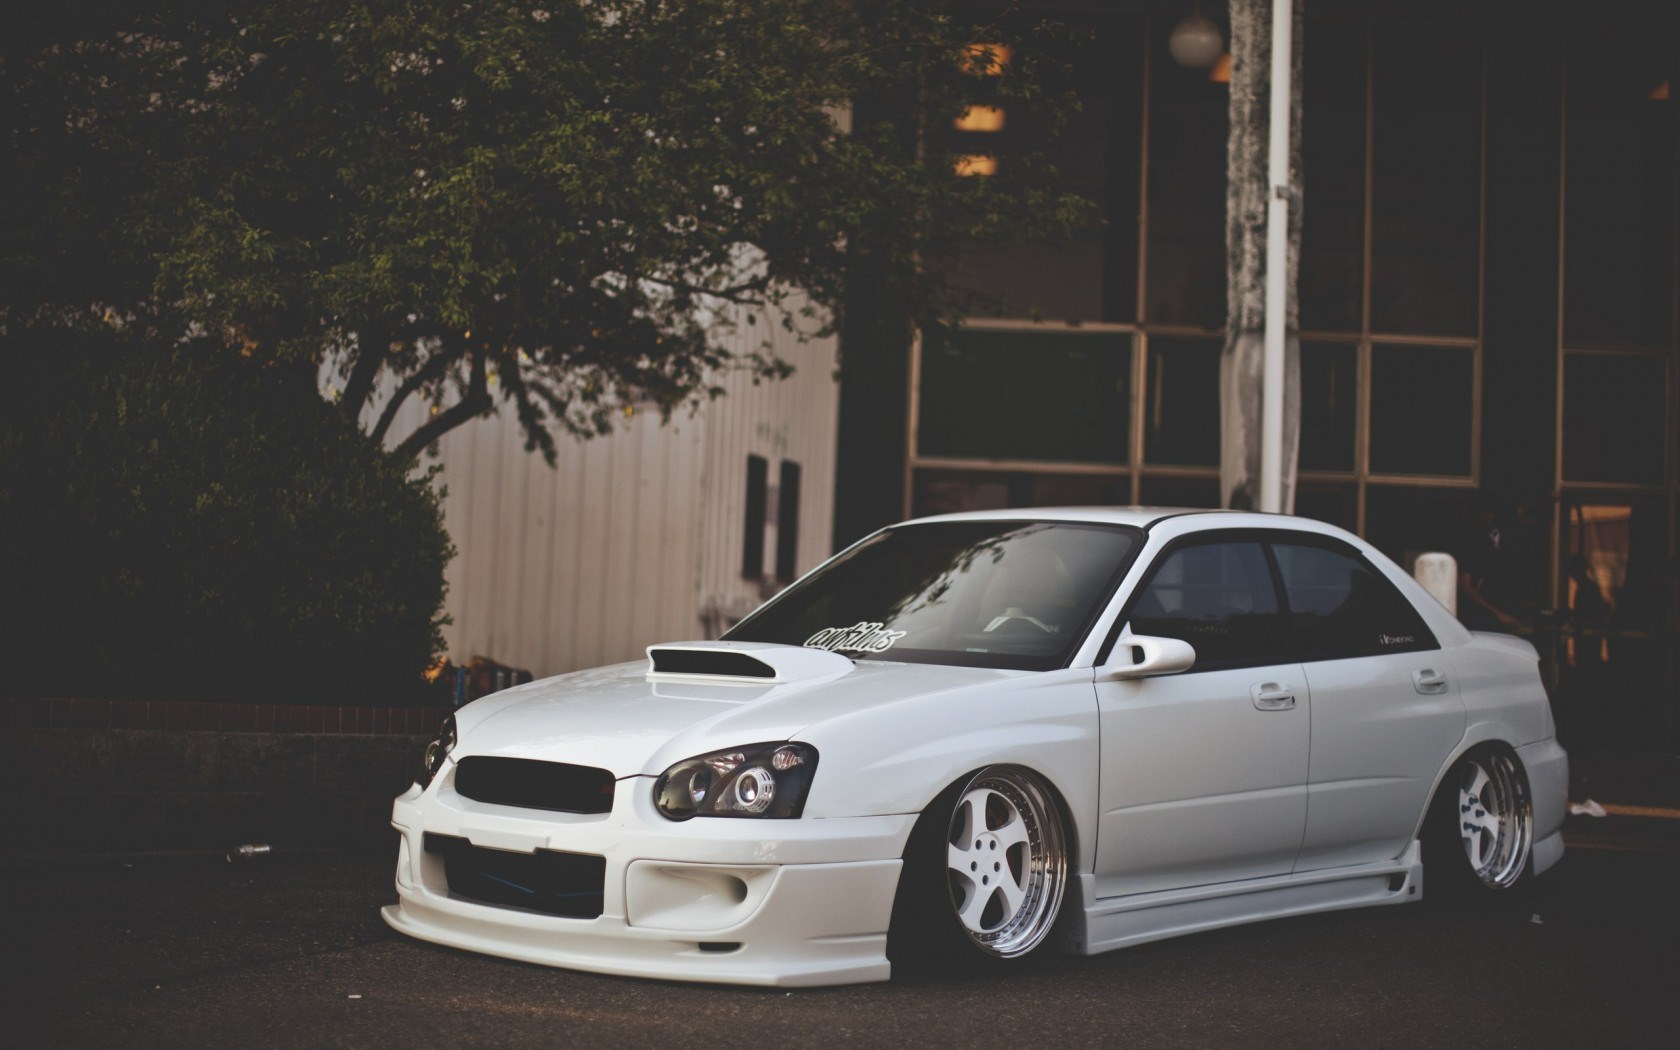 Subaru Impreza White Tuning Car